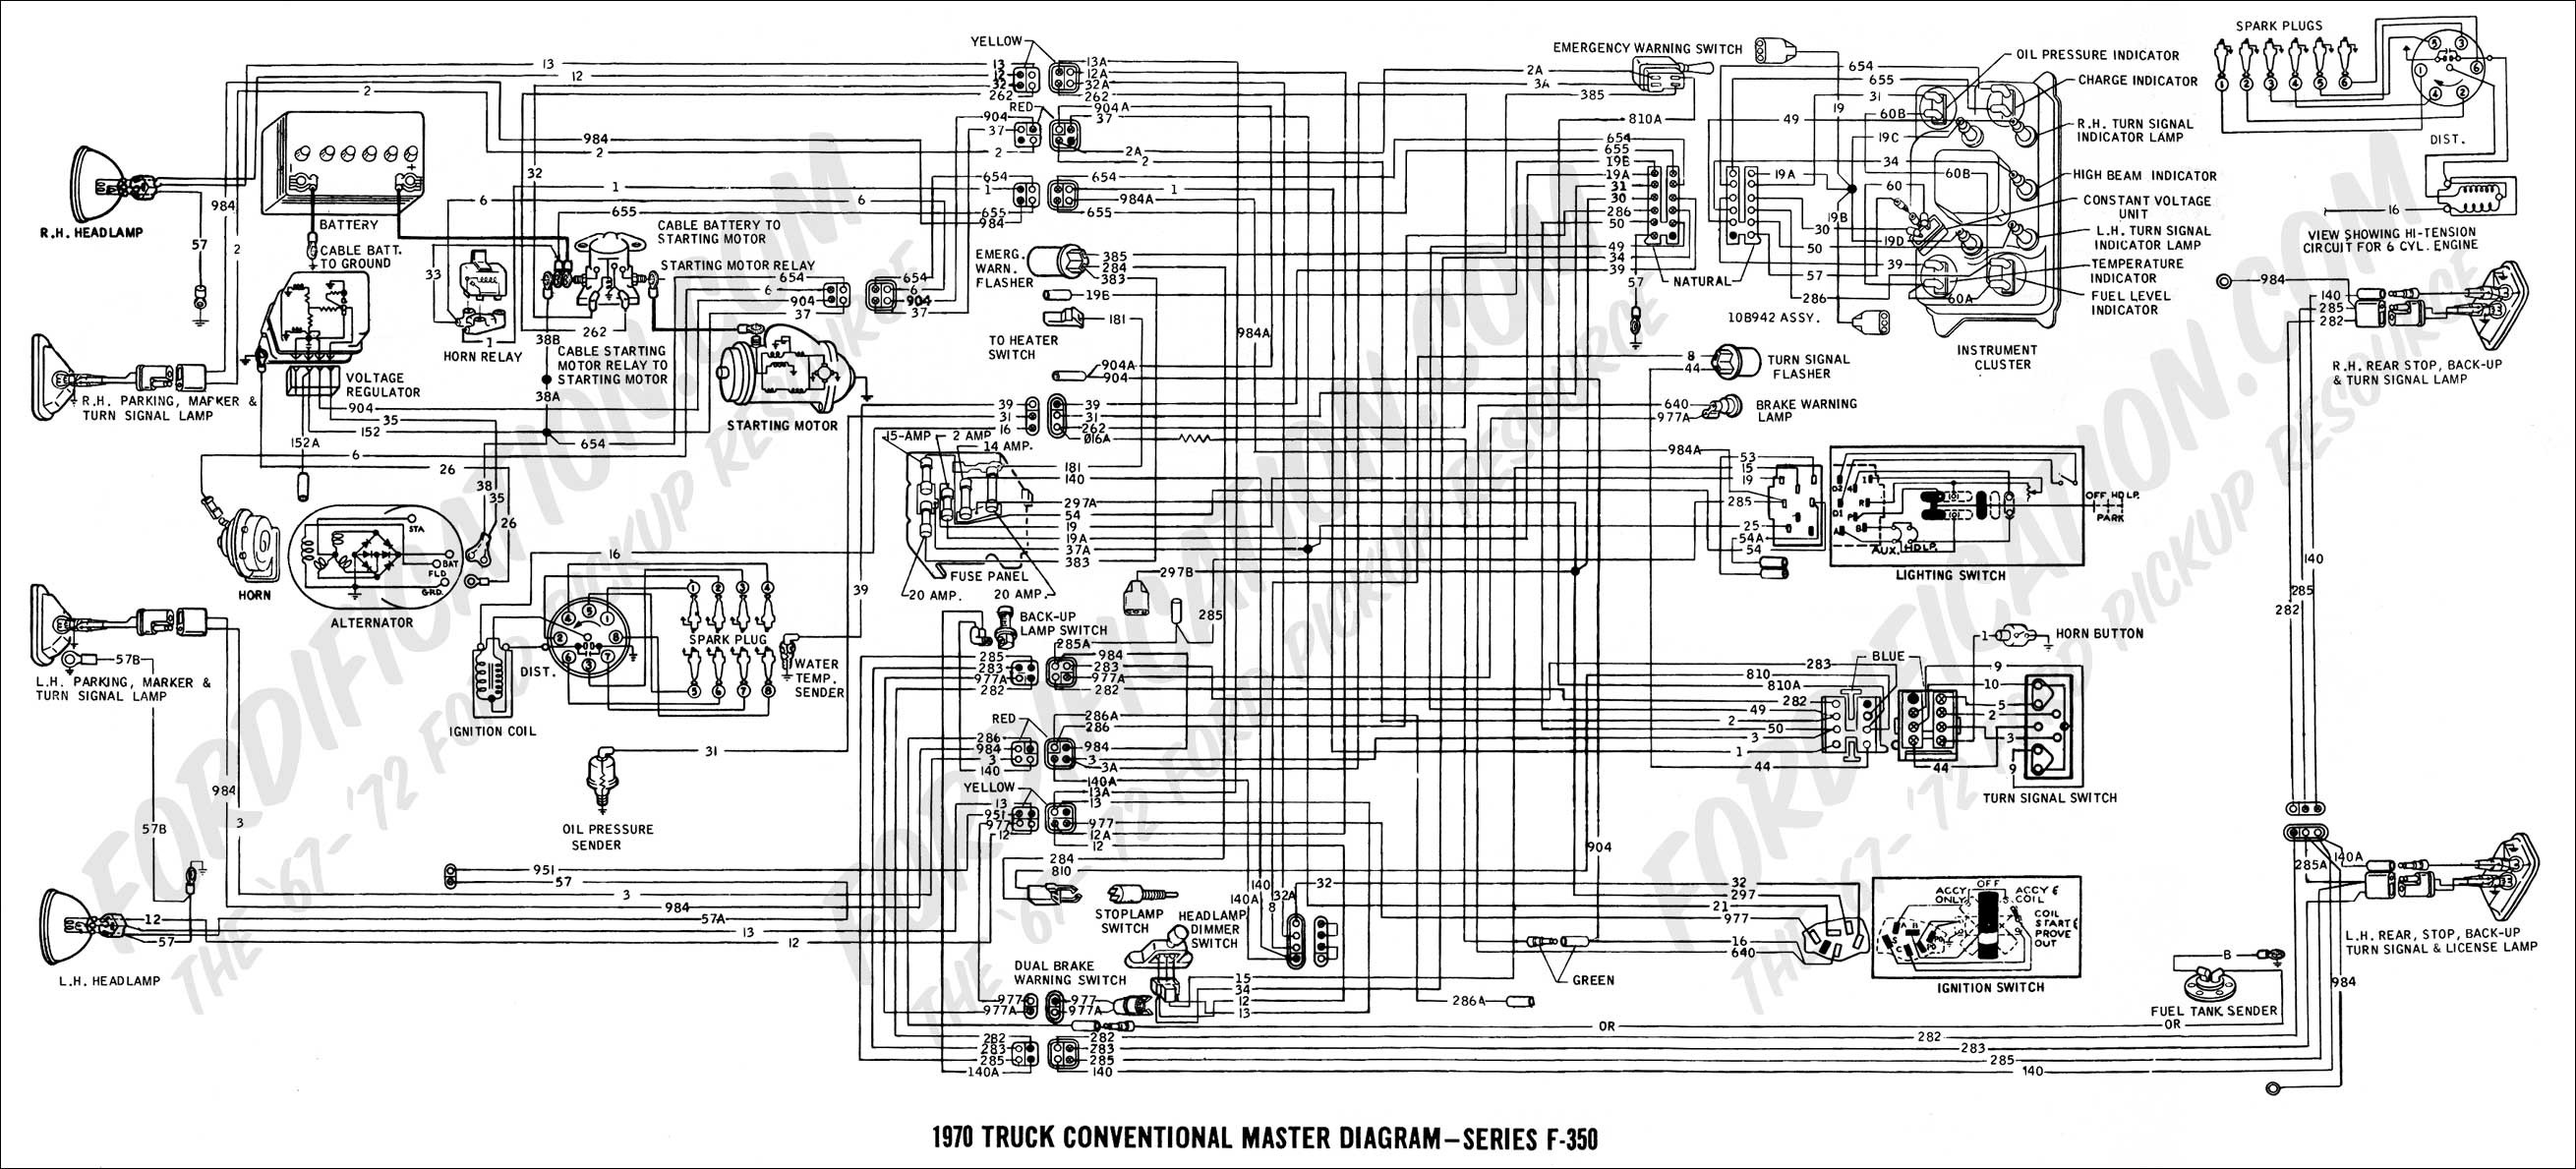 Ford Explorer Engine Diagram ford Truck Technical Drawings and Schematics Section H Wiring Fair Of Ford Explorer Engine Diagram